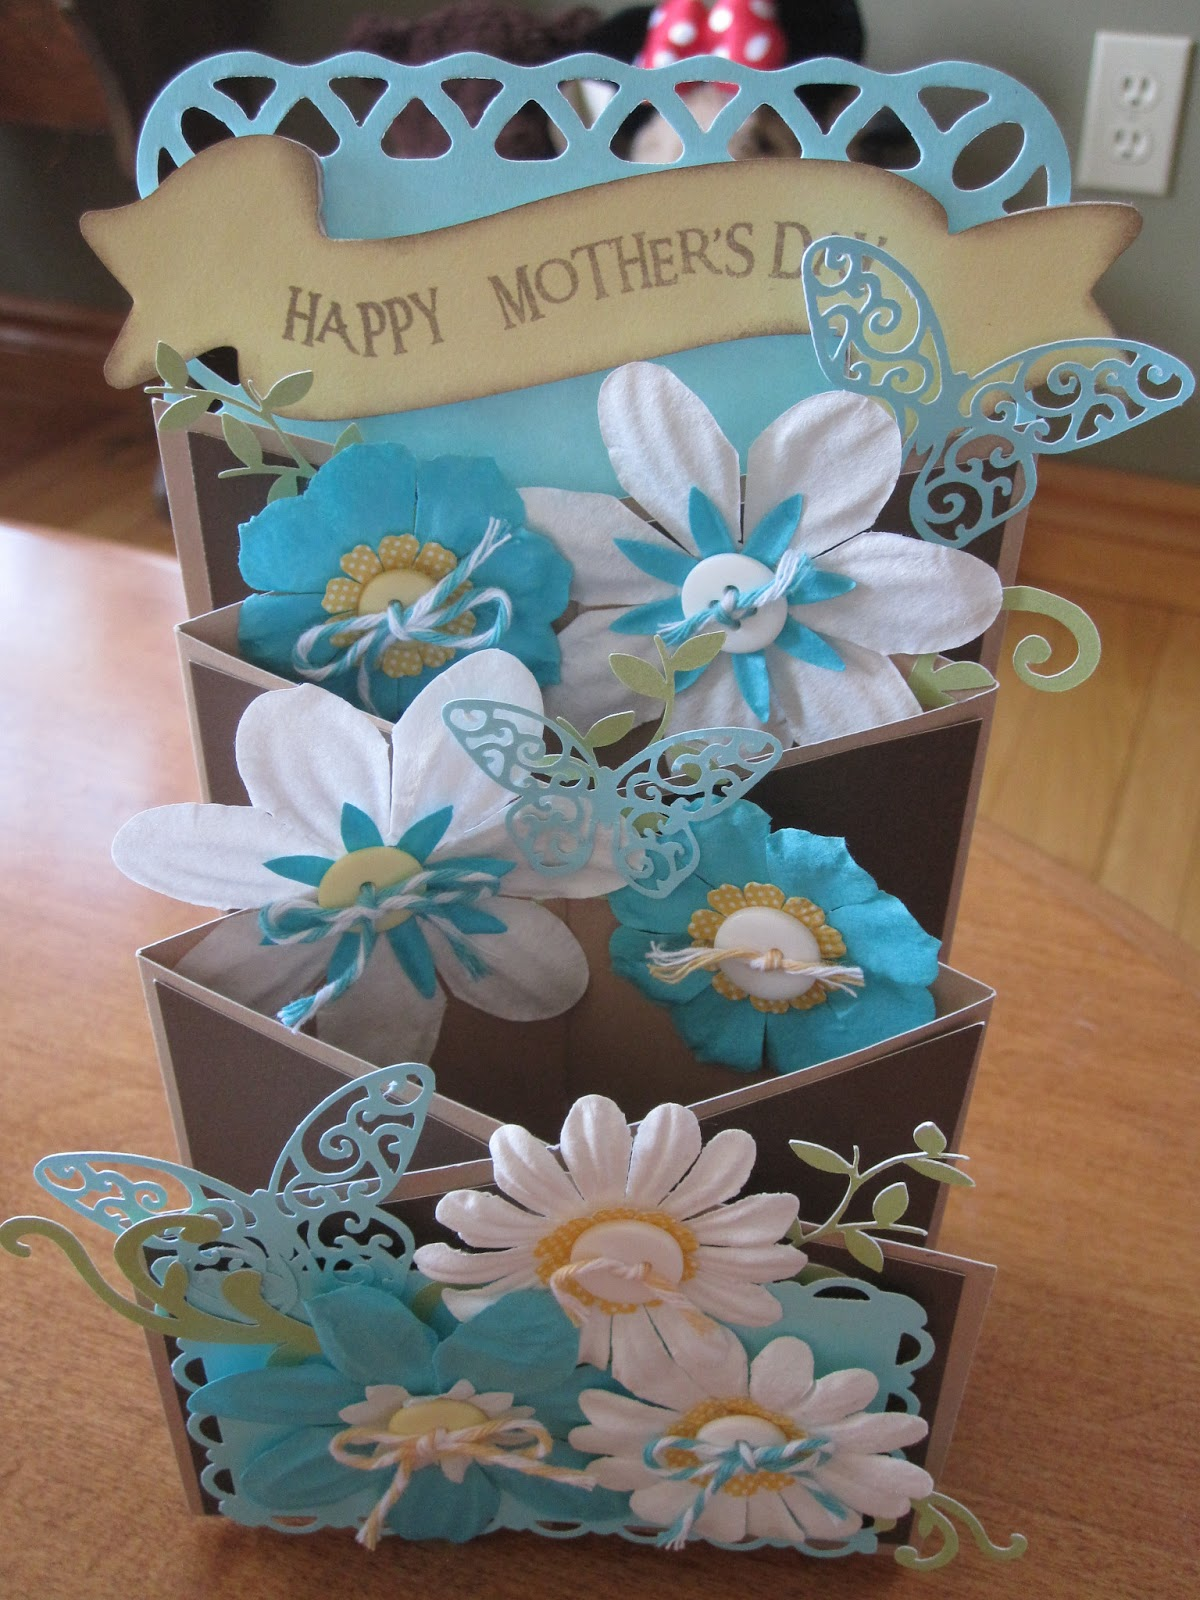 paper traditions happy mother's day